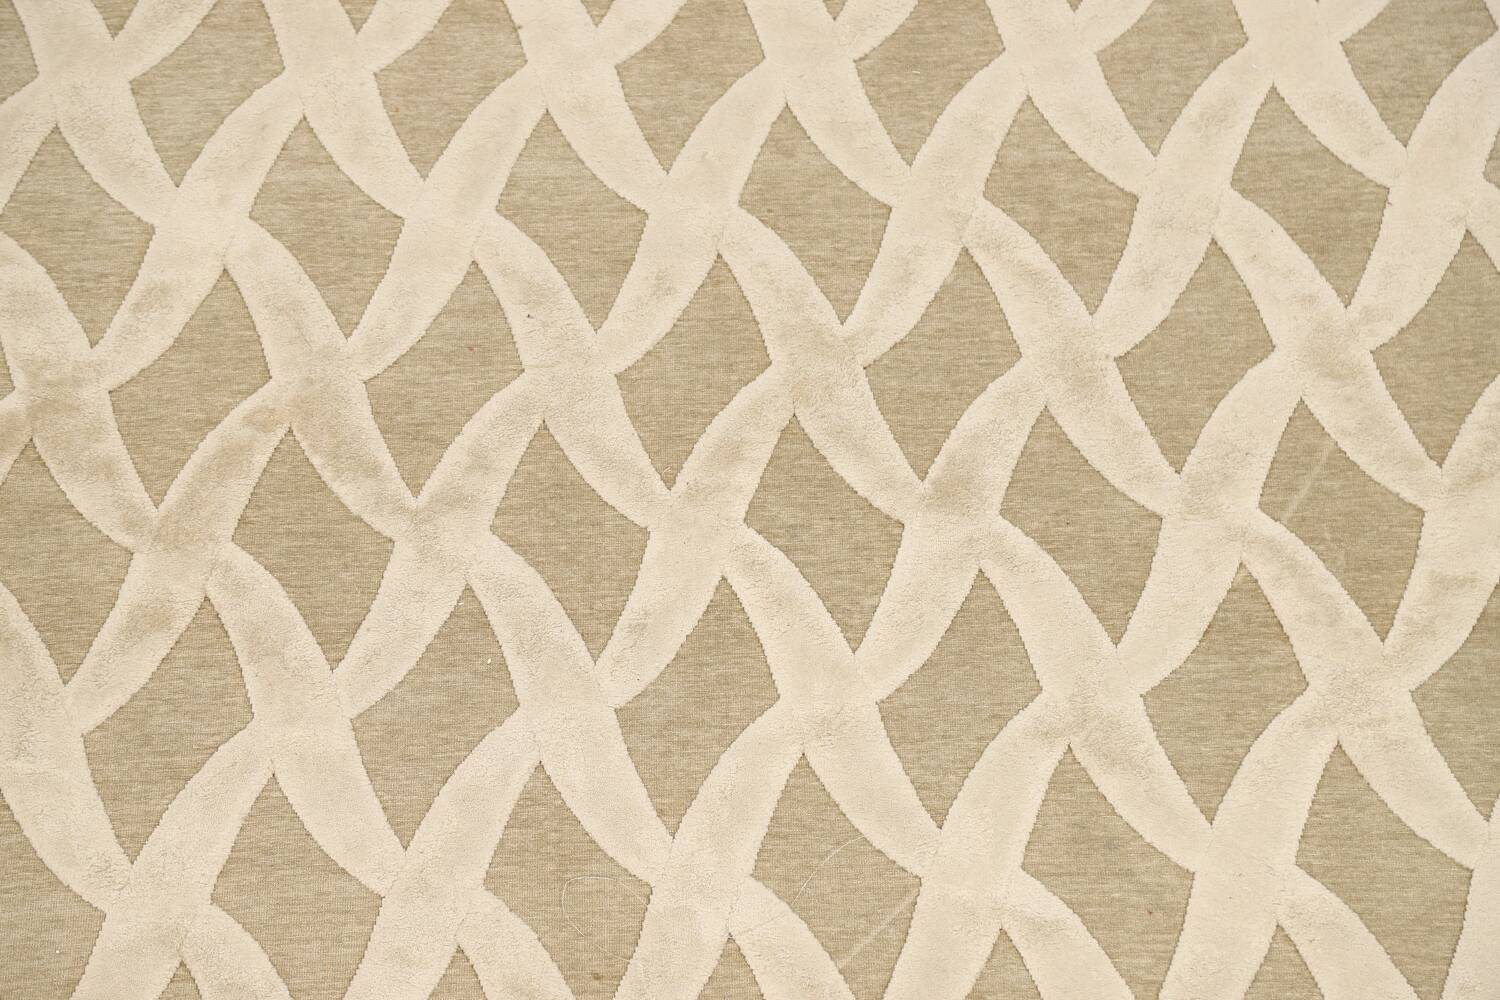 All-Over Waves Design Modern Oriental Area Rug 6x9 image 4